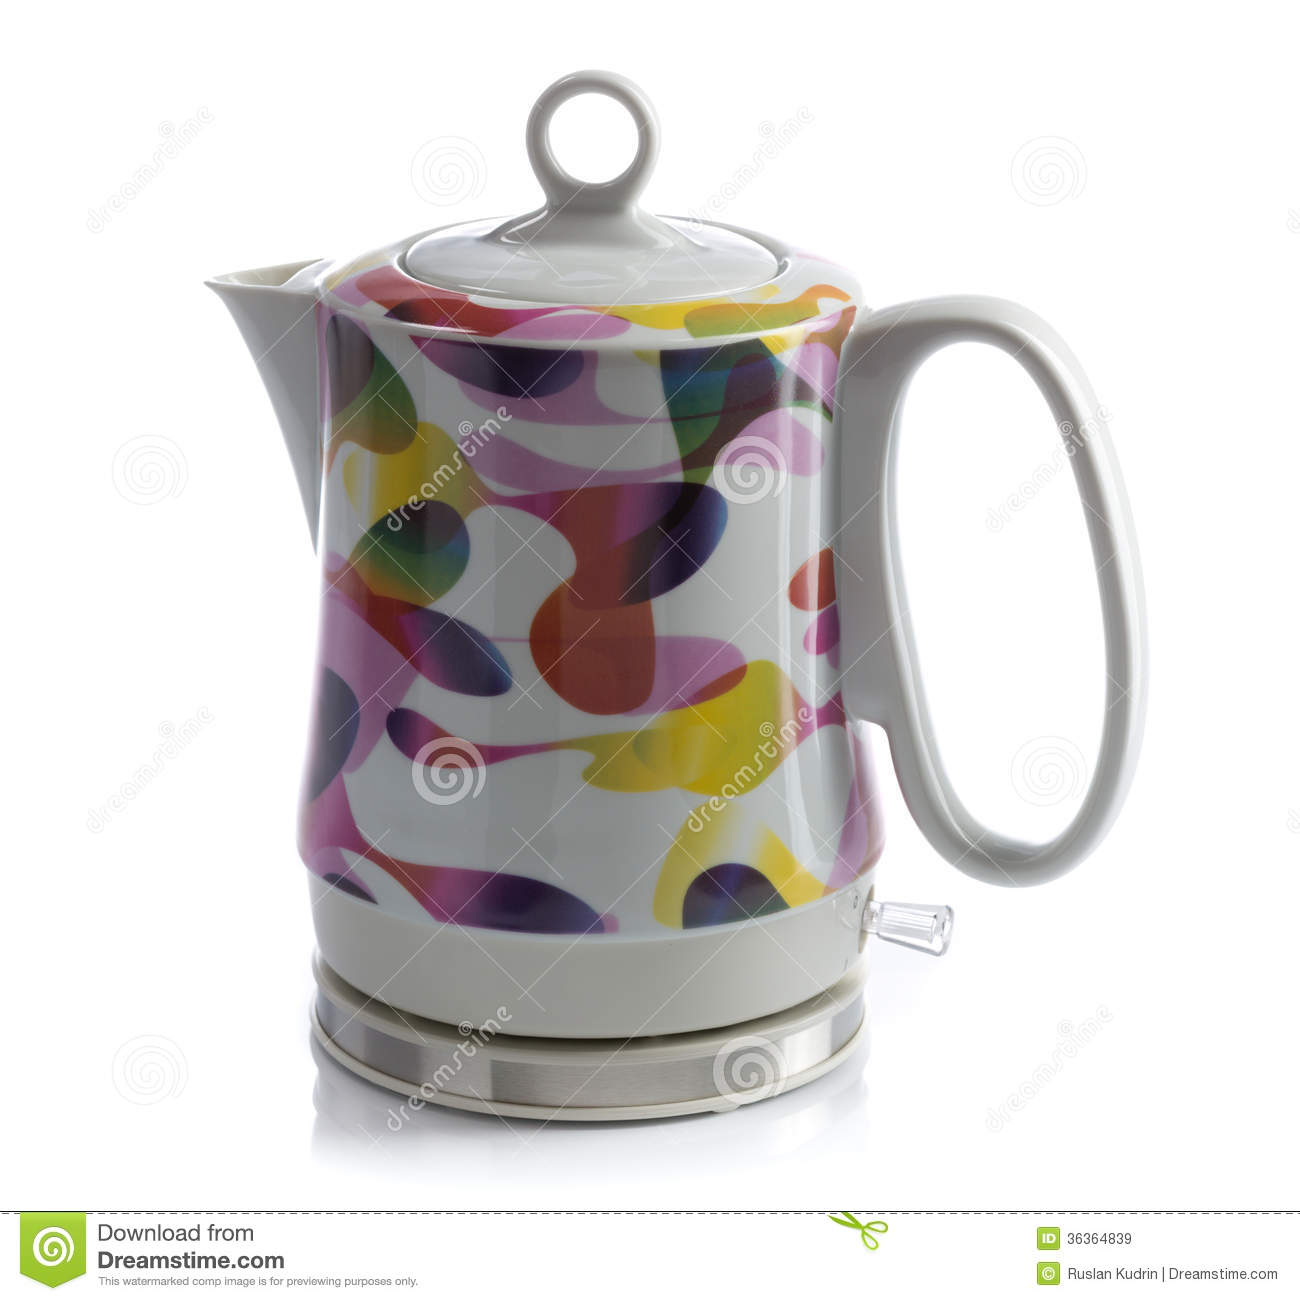 Porcelain Electric Kettle ~ Ceramic electric kettle royalty free stock images image